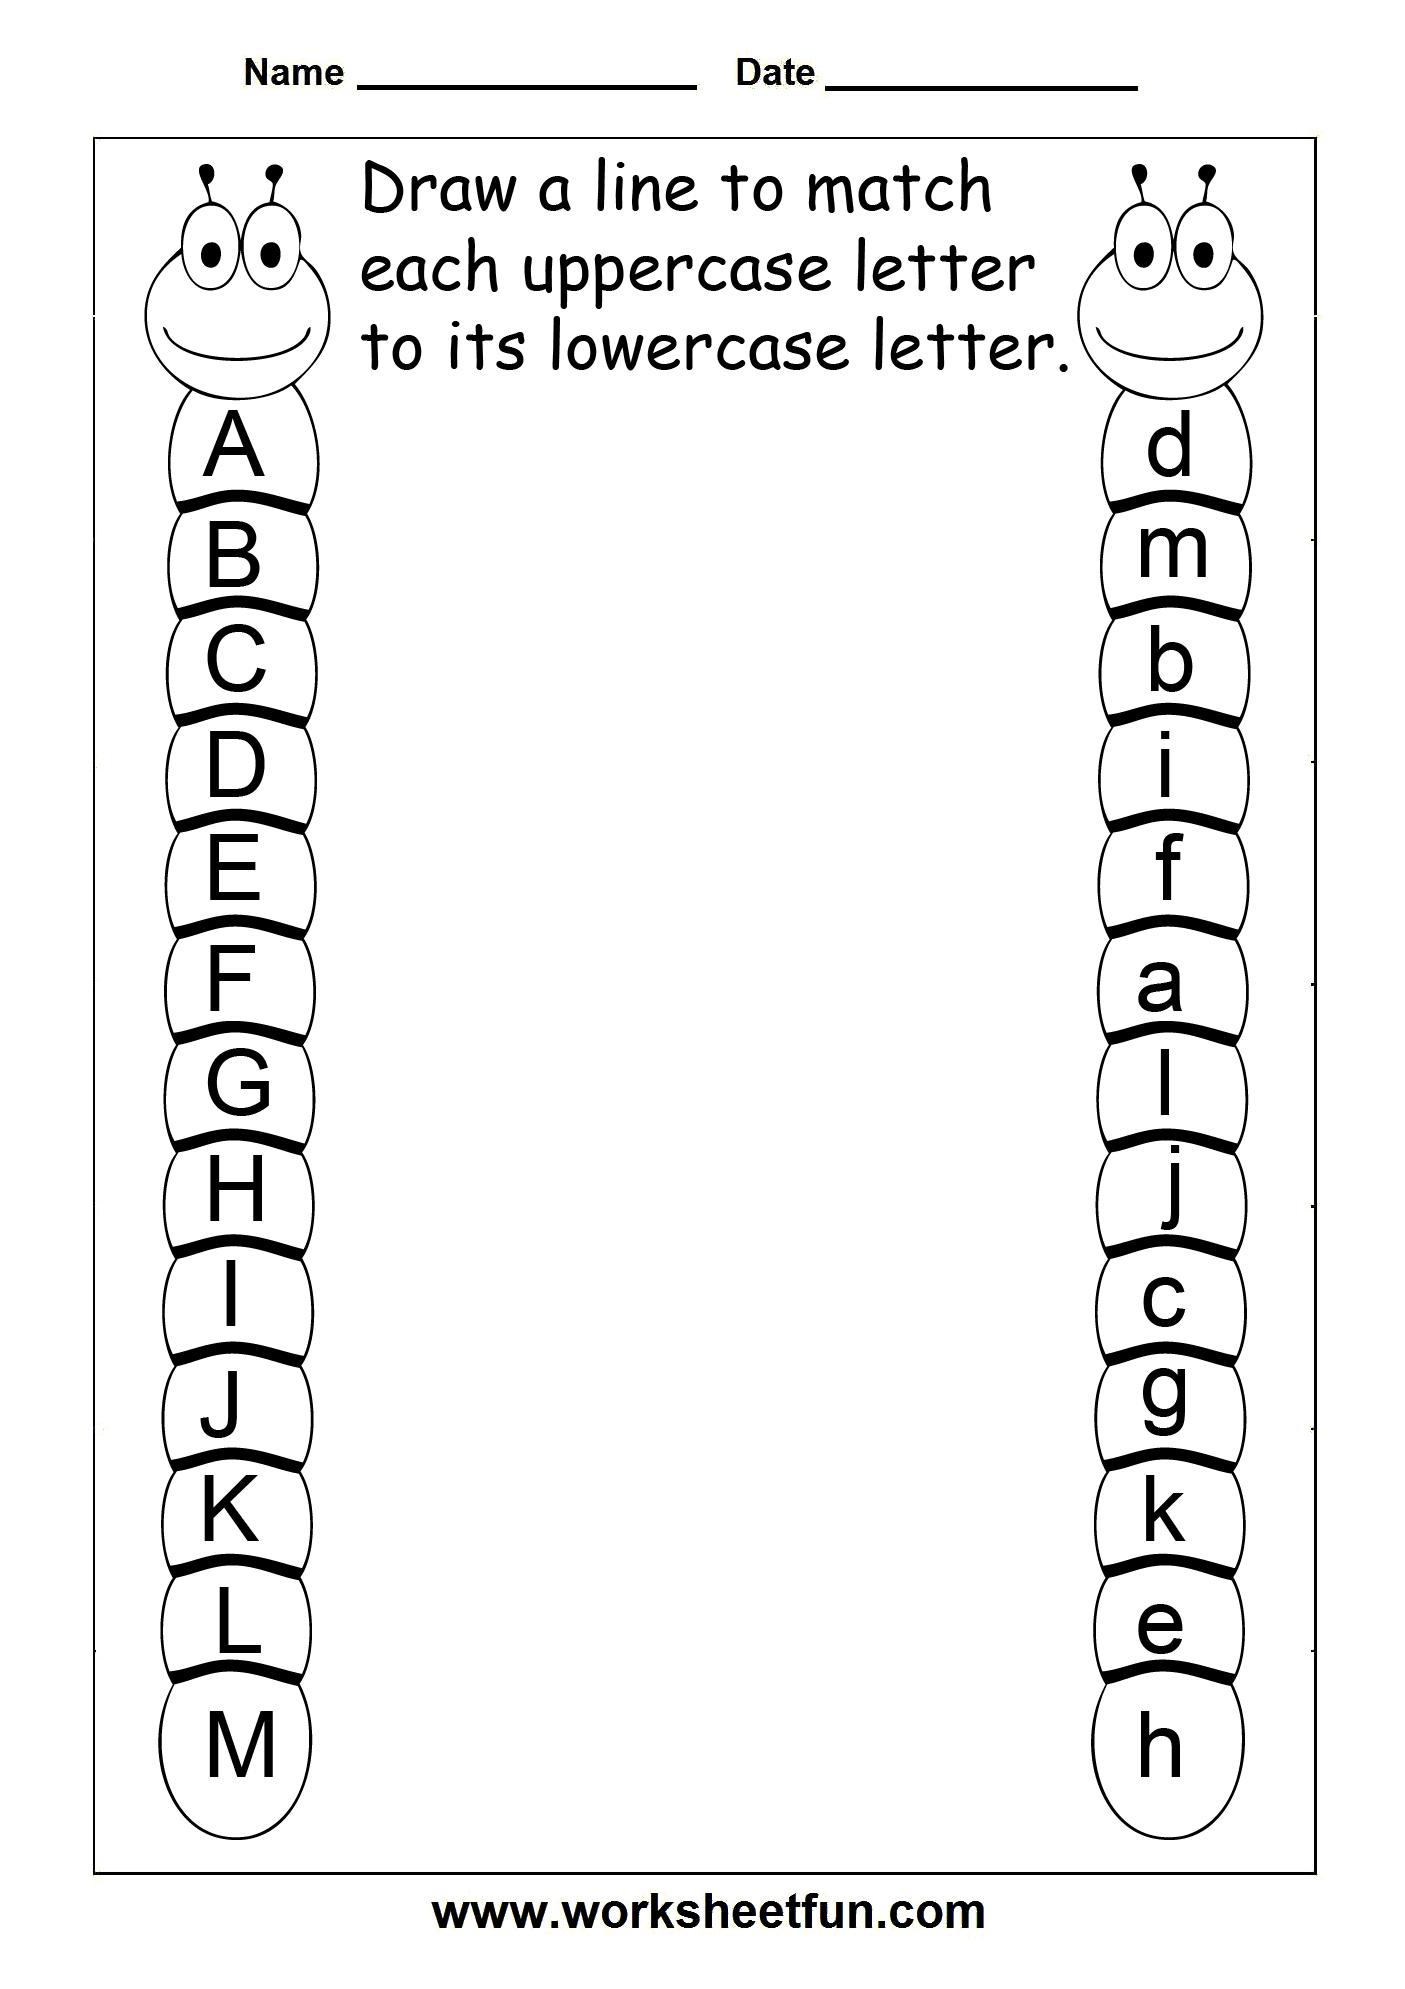 Aldiablosus  Sweet  Images About Work Worksheet On Pinterest  Coins Hidden  With Exquisite  Images About Work Worksheet On Pinterest  Coins Hidden Pictures And Thanksgiving With Lovely Fourth Grade Fraction Worksheets Also Printable Music Worksheets In Addition Circle Circumference Worksheet And Writing Abc Worksheets As Well As  More  Less Worksheet Additionally Free Printable Cursive Writing Worksheets From Pinterestcom With Aldiablosus  Exquisite  Images About Work Worksheet On Pinterest  Coins Hidden  With Lovely  Images About Work Worksheet On Pinterest  Coins Hidden Pictures And Thanksgiving And Sweet Fourth Grade Fraction Worksheets Also Printable Music Worksheets In Addition Circle Circumference Worksheet From Pinterestcom